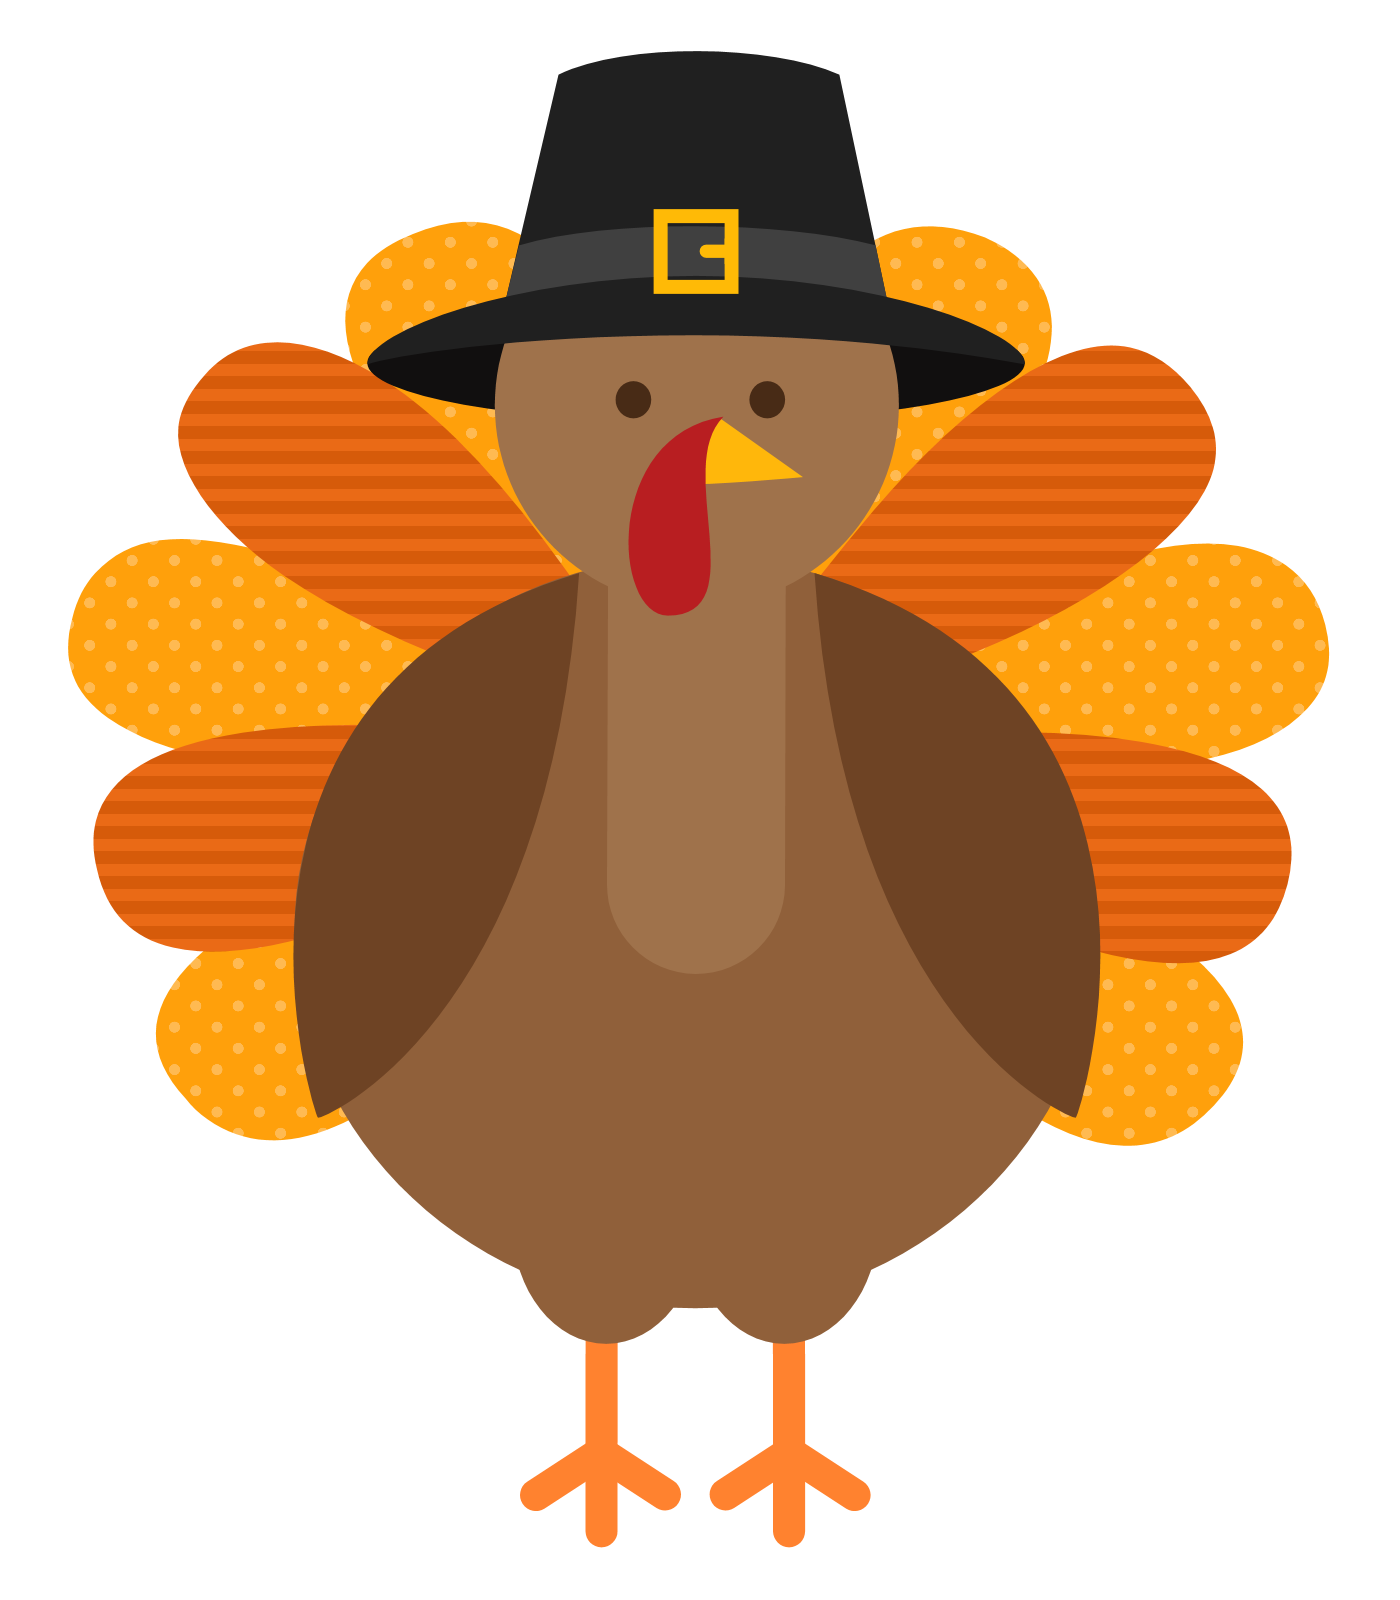 Turkey clipart simple svg freeuse library Character day in prek clipart - ClipartFox svg freeuse library